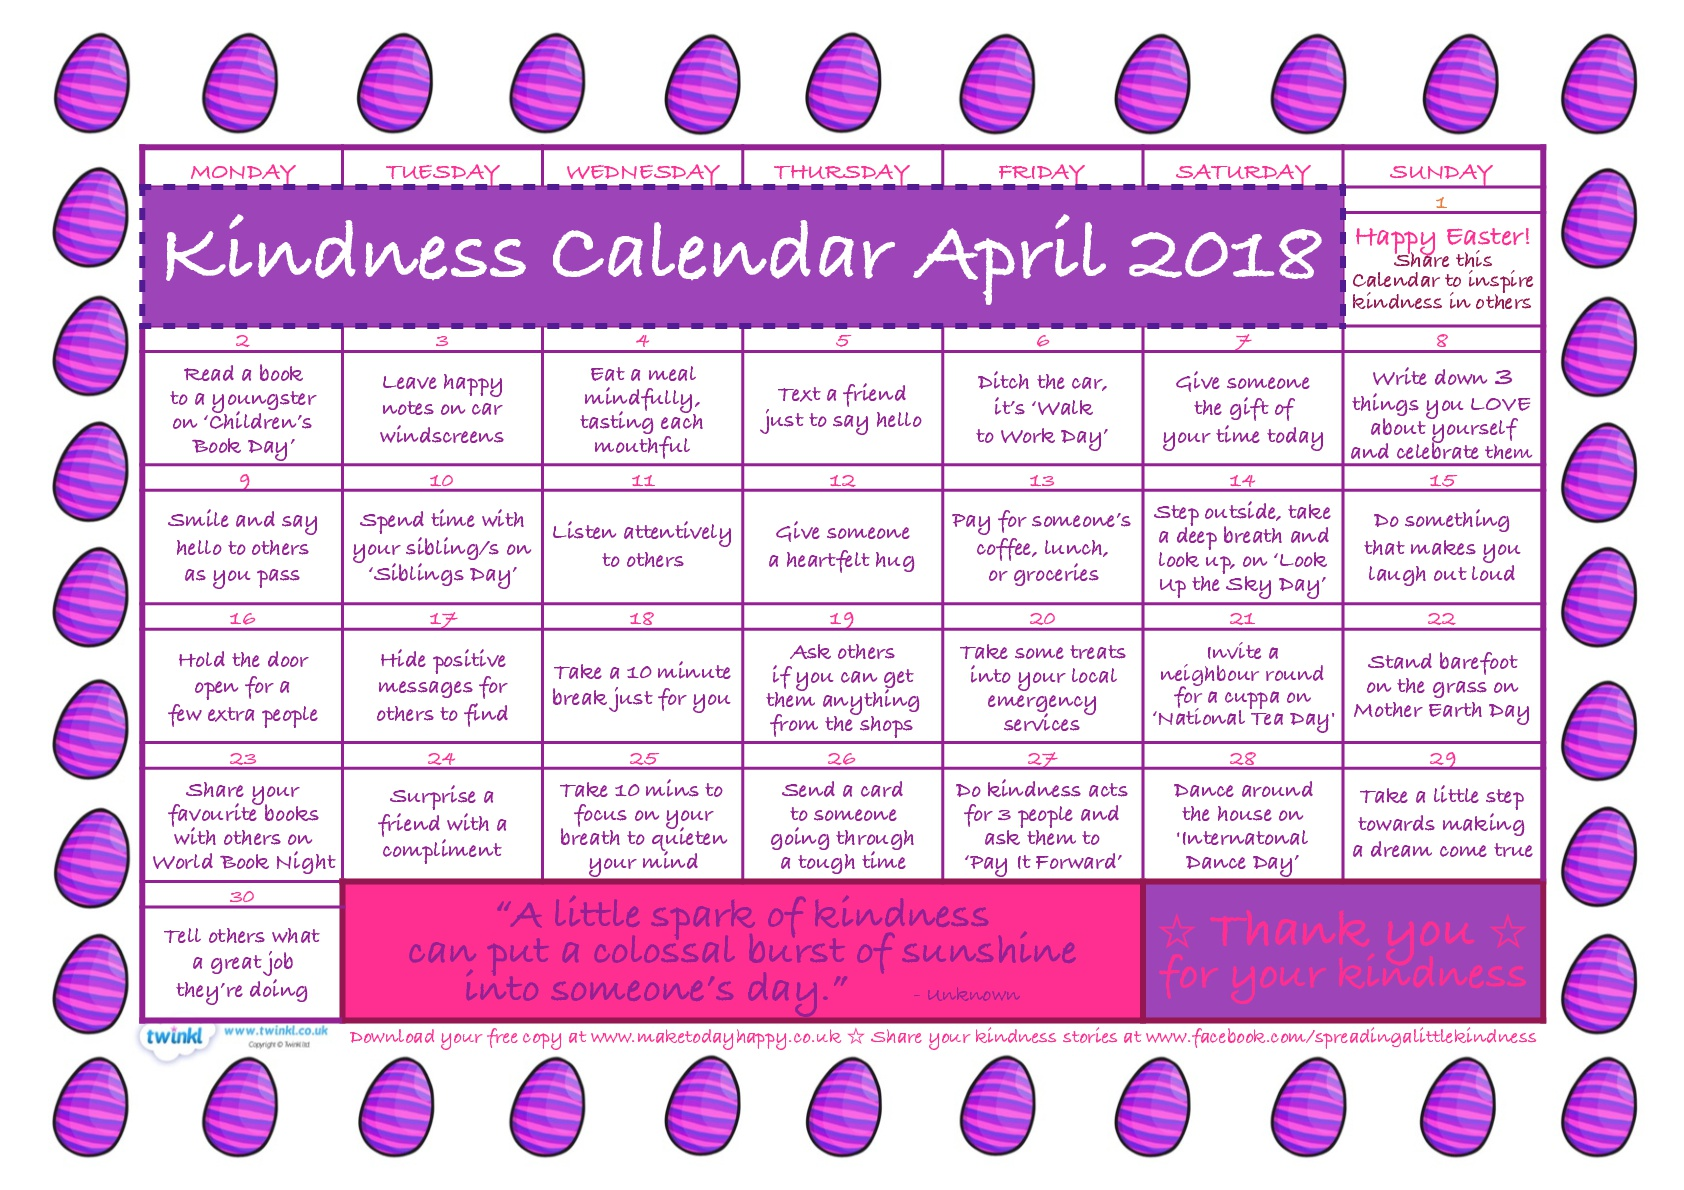 Kindness Calendar April 2018.jpg